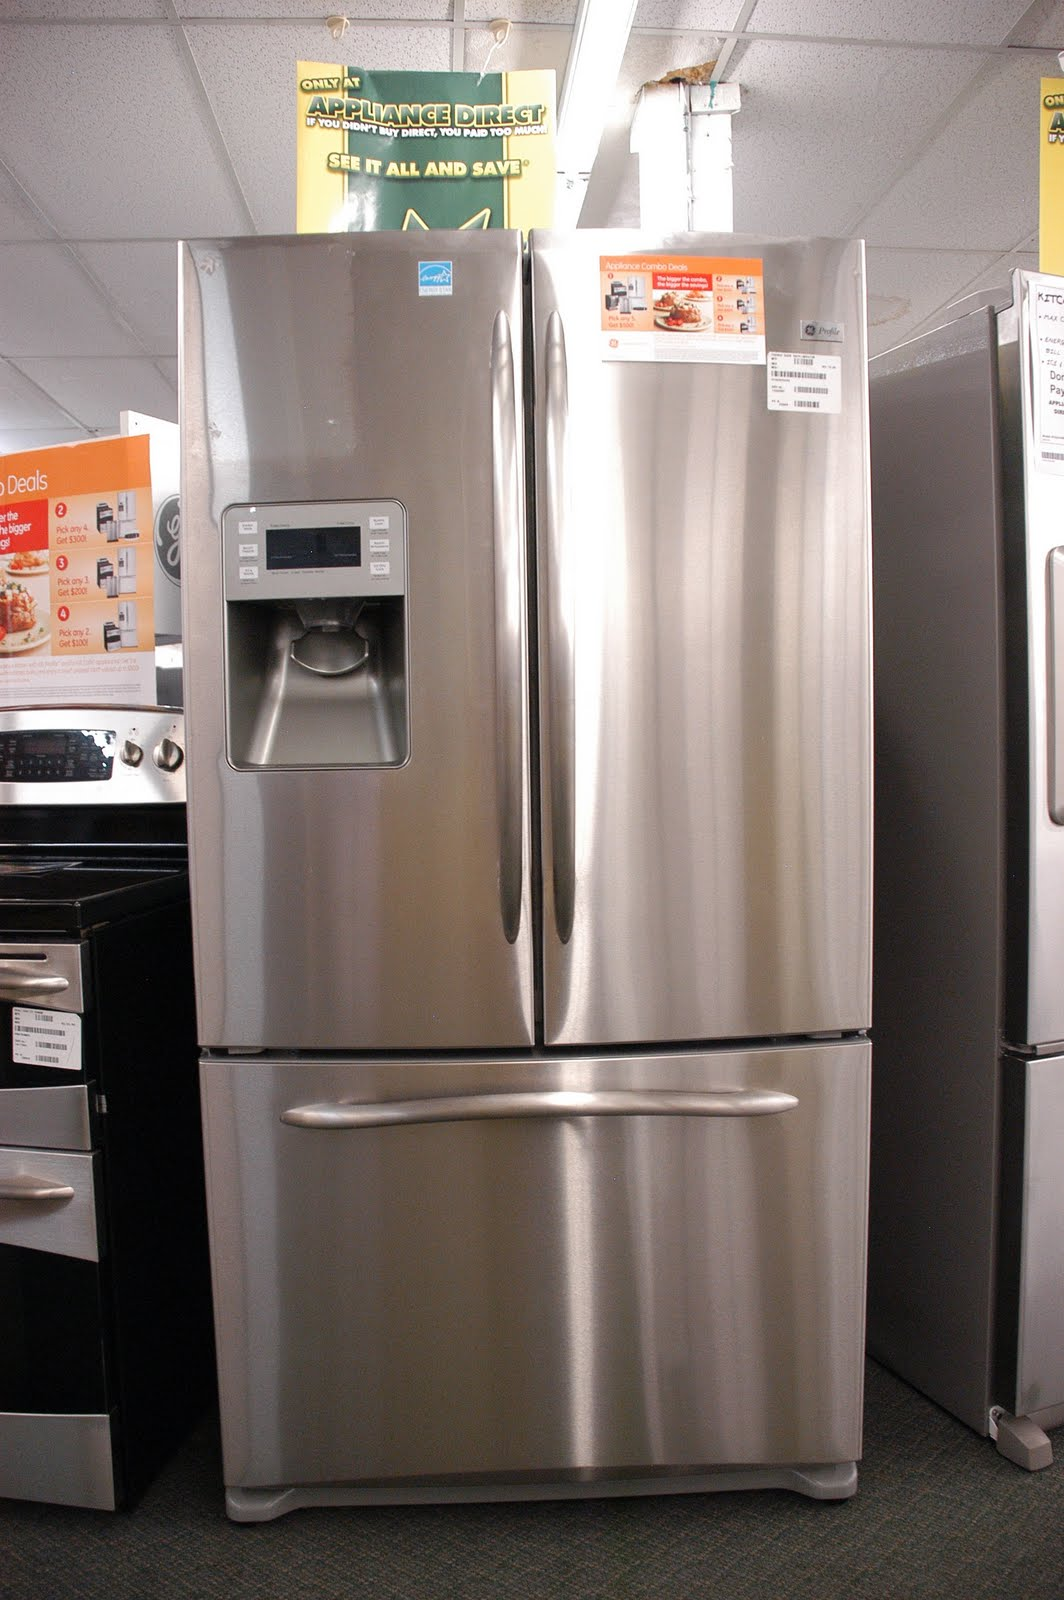 Appliance direct video blog ge profile energy star 258 cu ft ge profile energy star 258 cu ft french door refrigerator with external dispenser orlando appliance store rubansaba